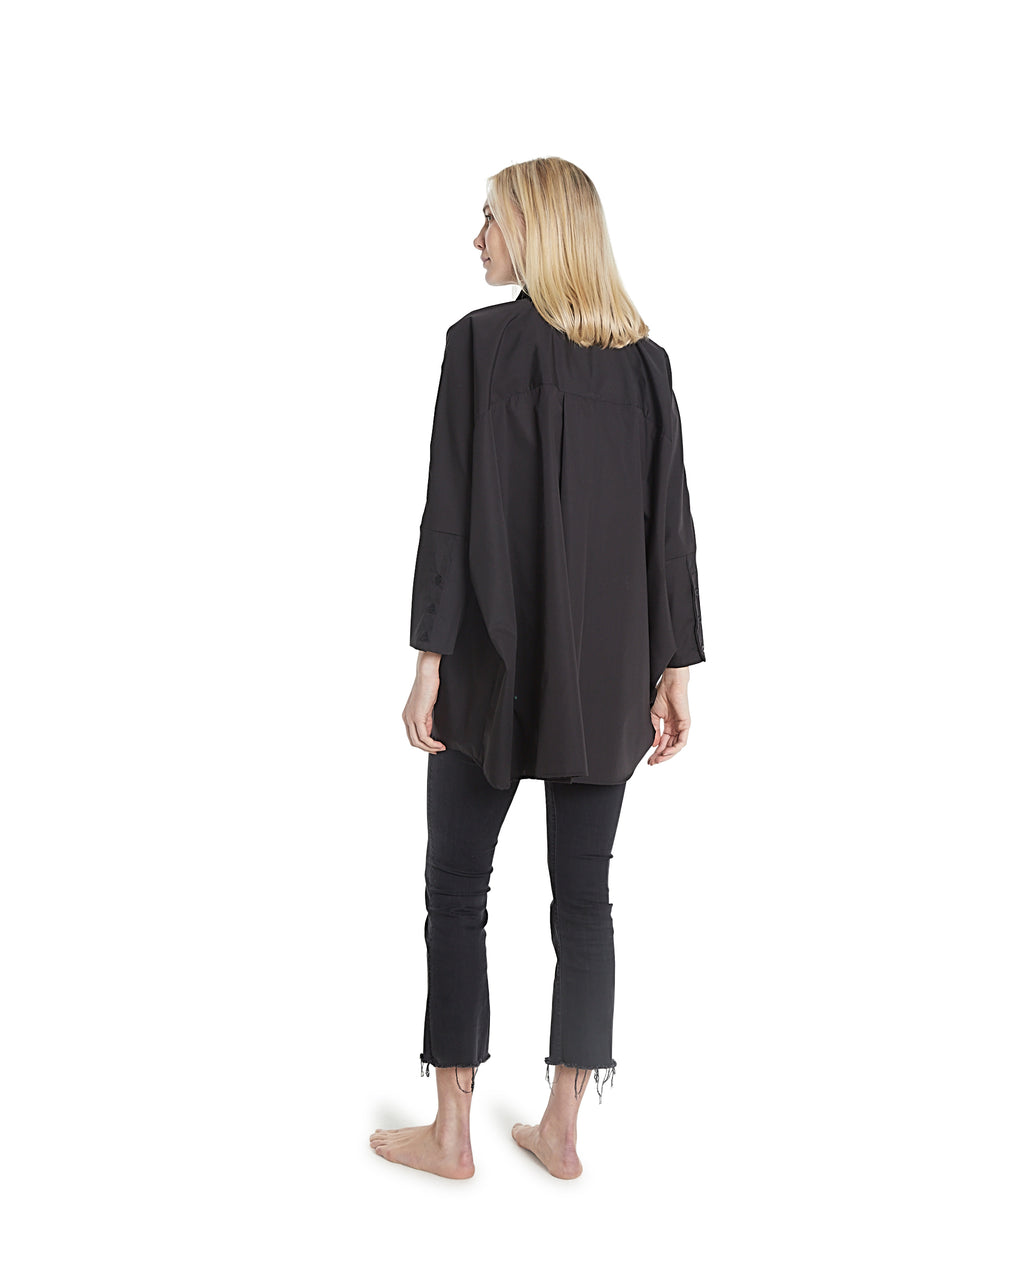 no. 1030 black oversized button shirt